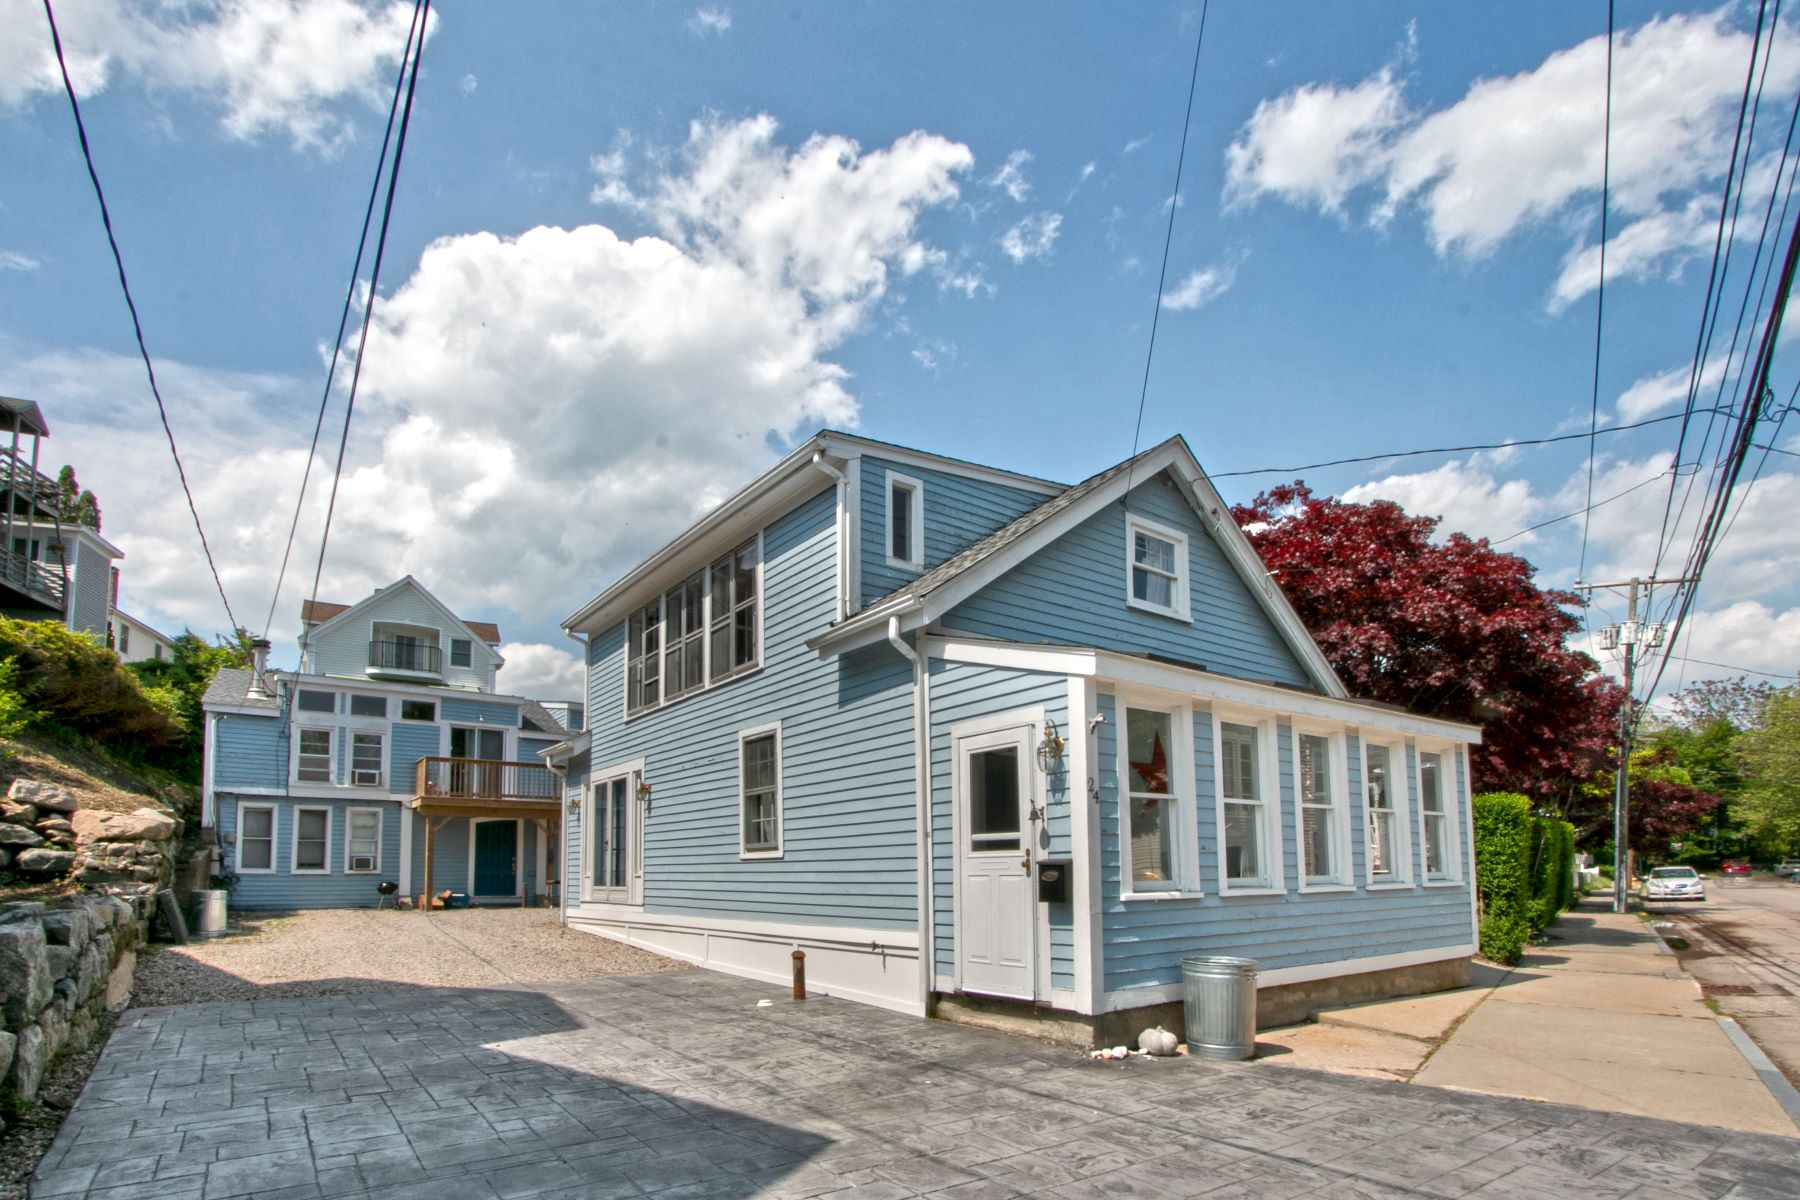 multi-family homes for Sale at Stonington Borough, Just a Walk to Shops 24-26 Elm Street, Stonington, Connecticut 06378 United States